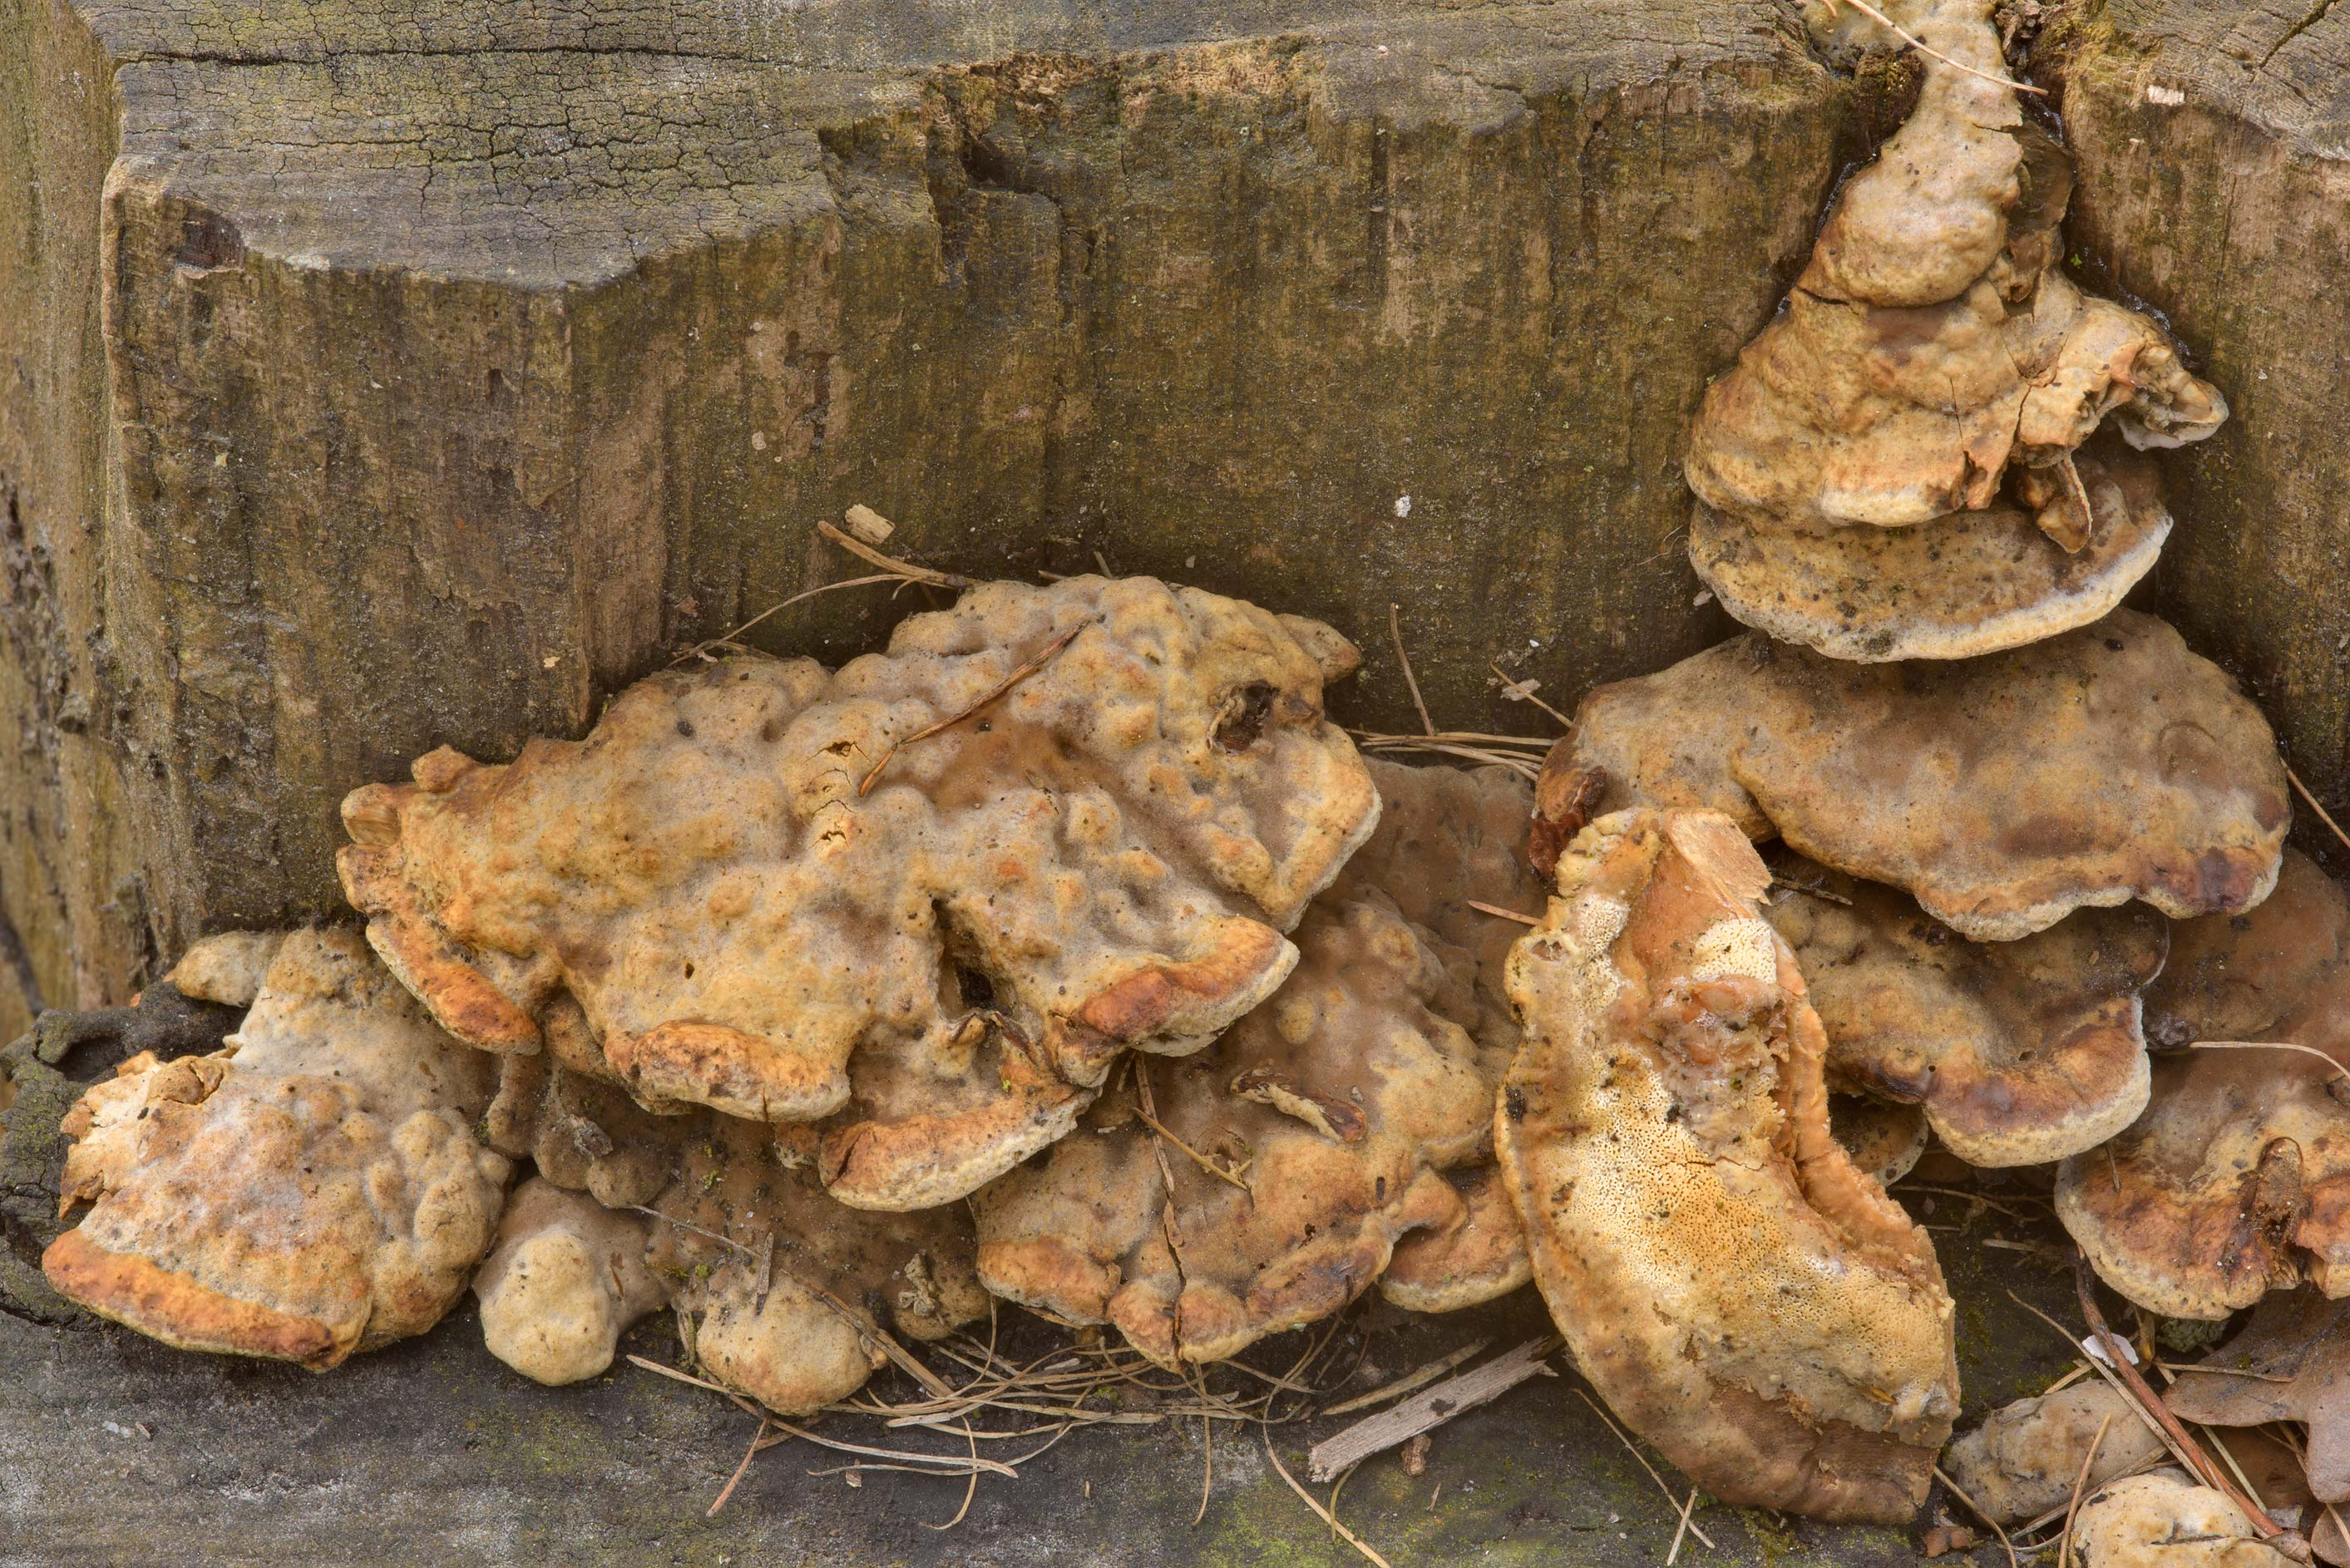 Some timber mushrooms of a stump of maple tree in...Institute. St.Petersburg, Russia